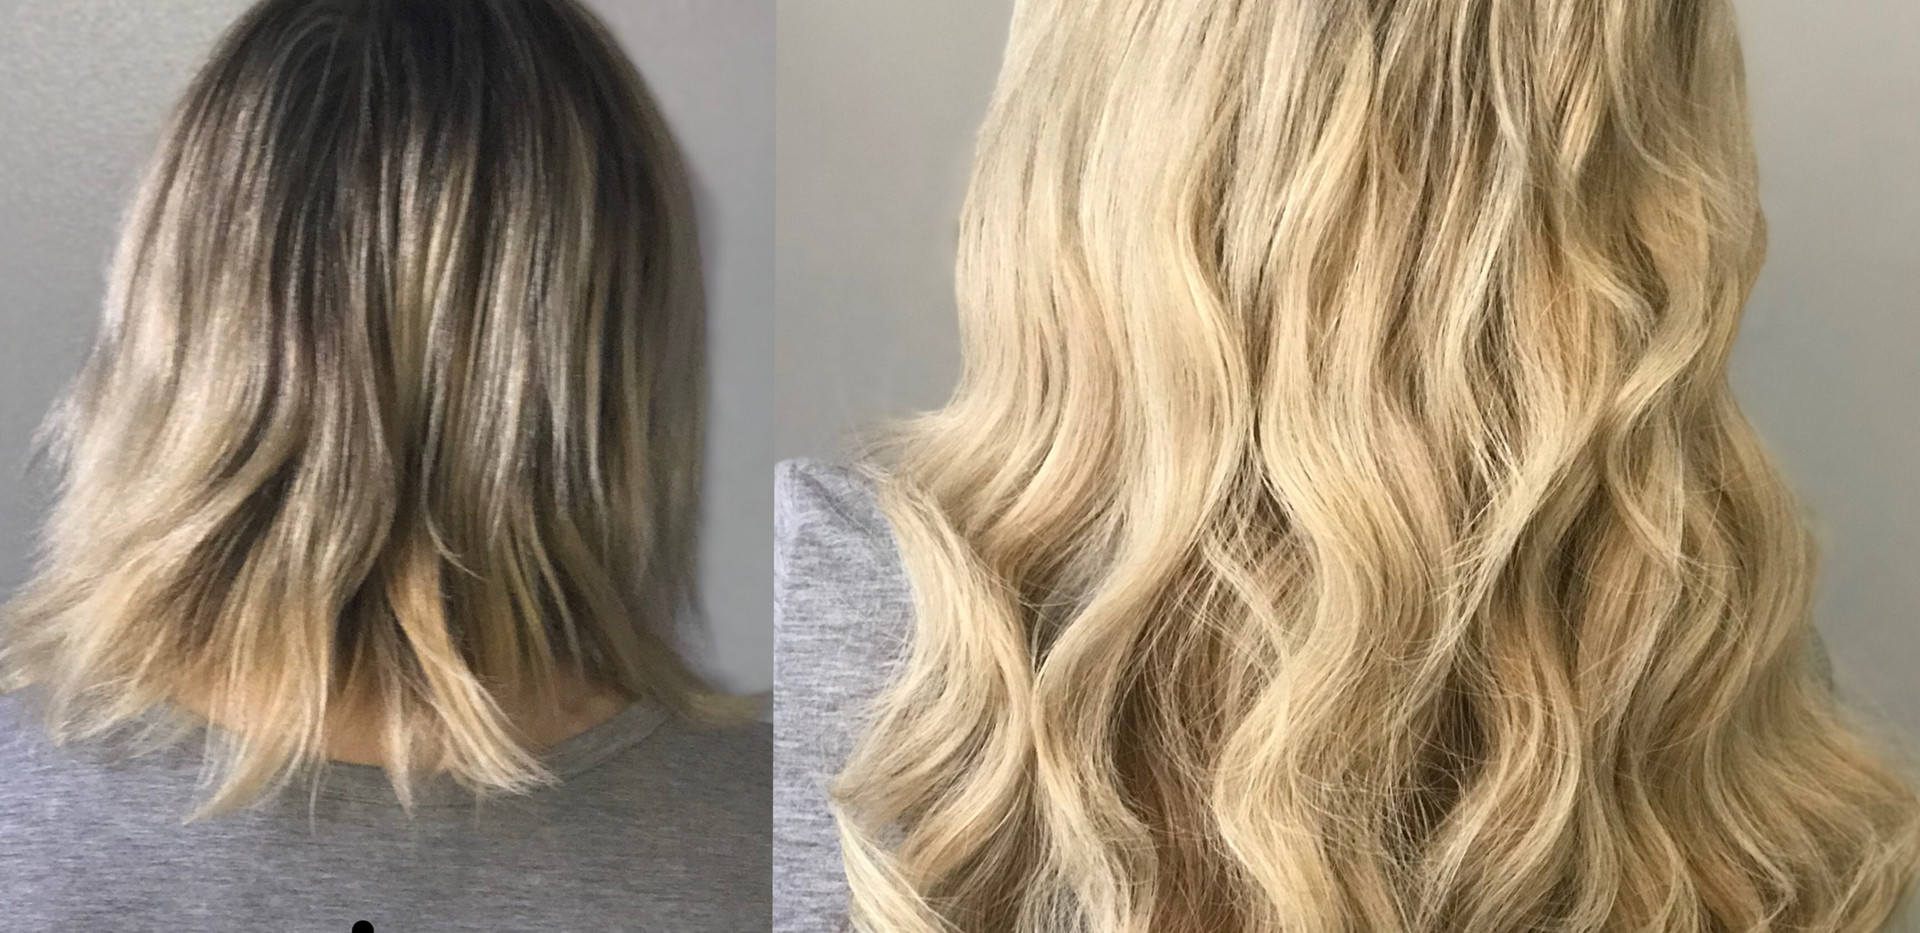 Smart Hair Extensions add length and fullness